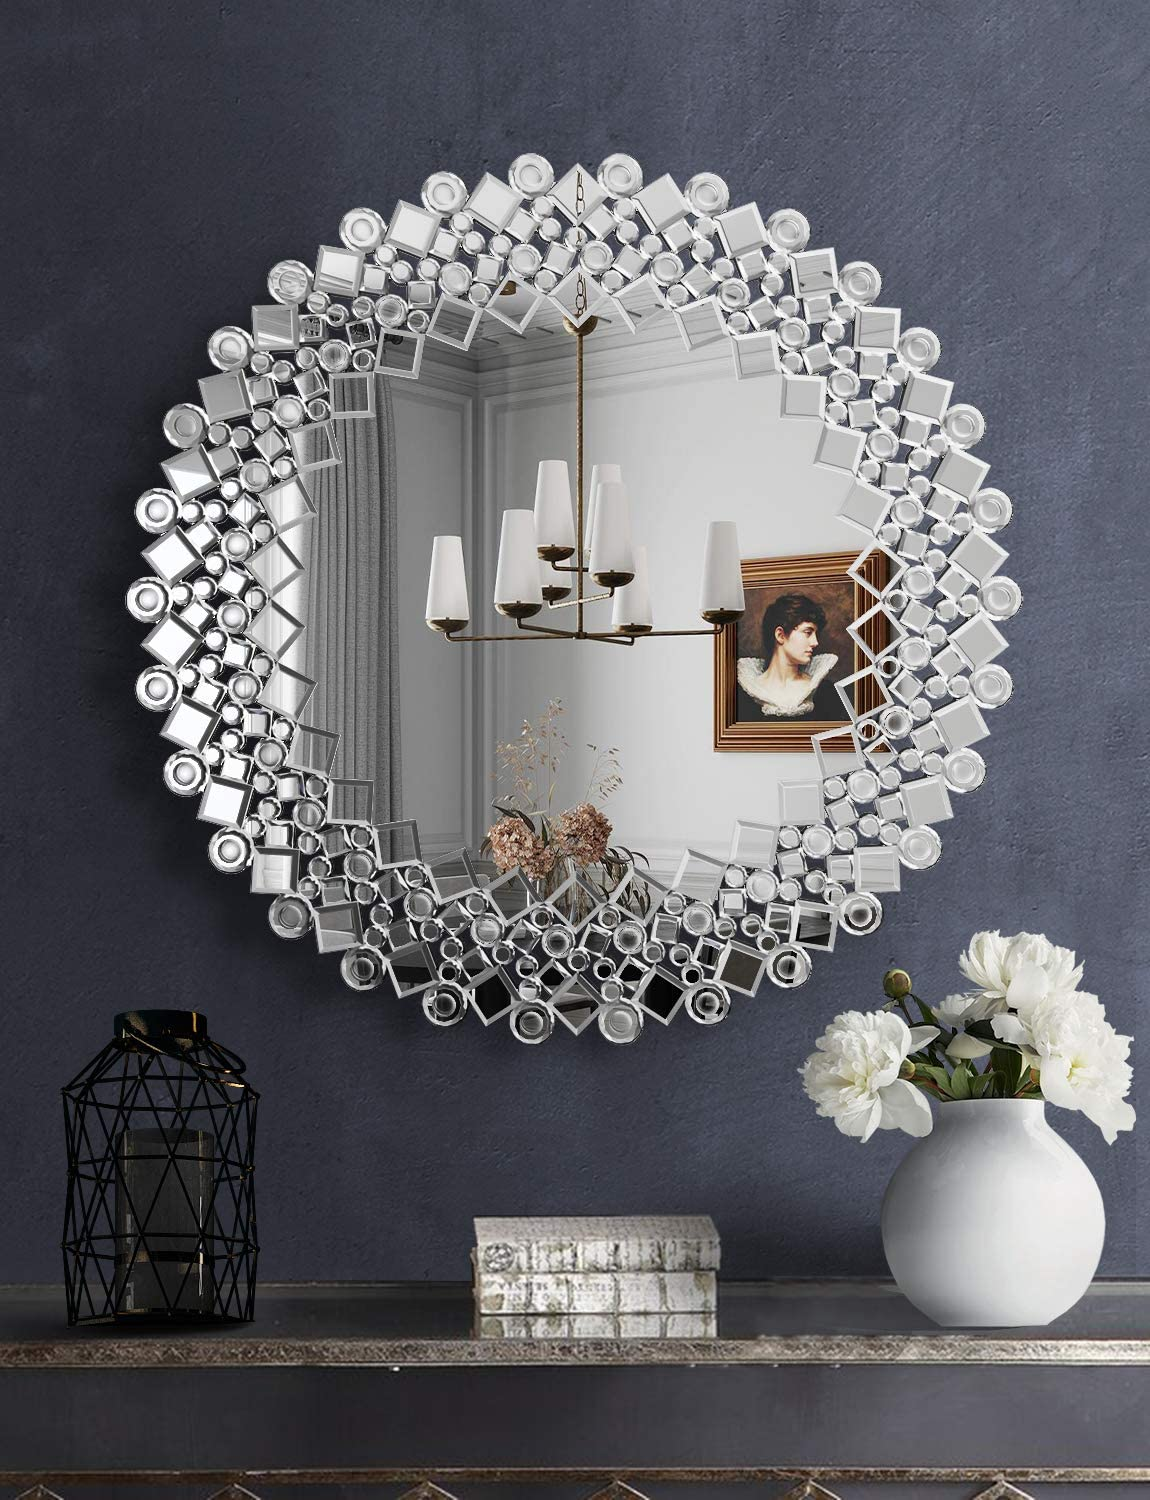 Mirrored Round Decor Mirror - 31.3'' x31.5'' Glass Framed Decor Wall Mirror for Decor Fireplace Bedroom Livingroom